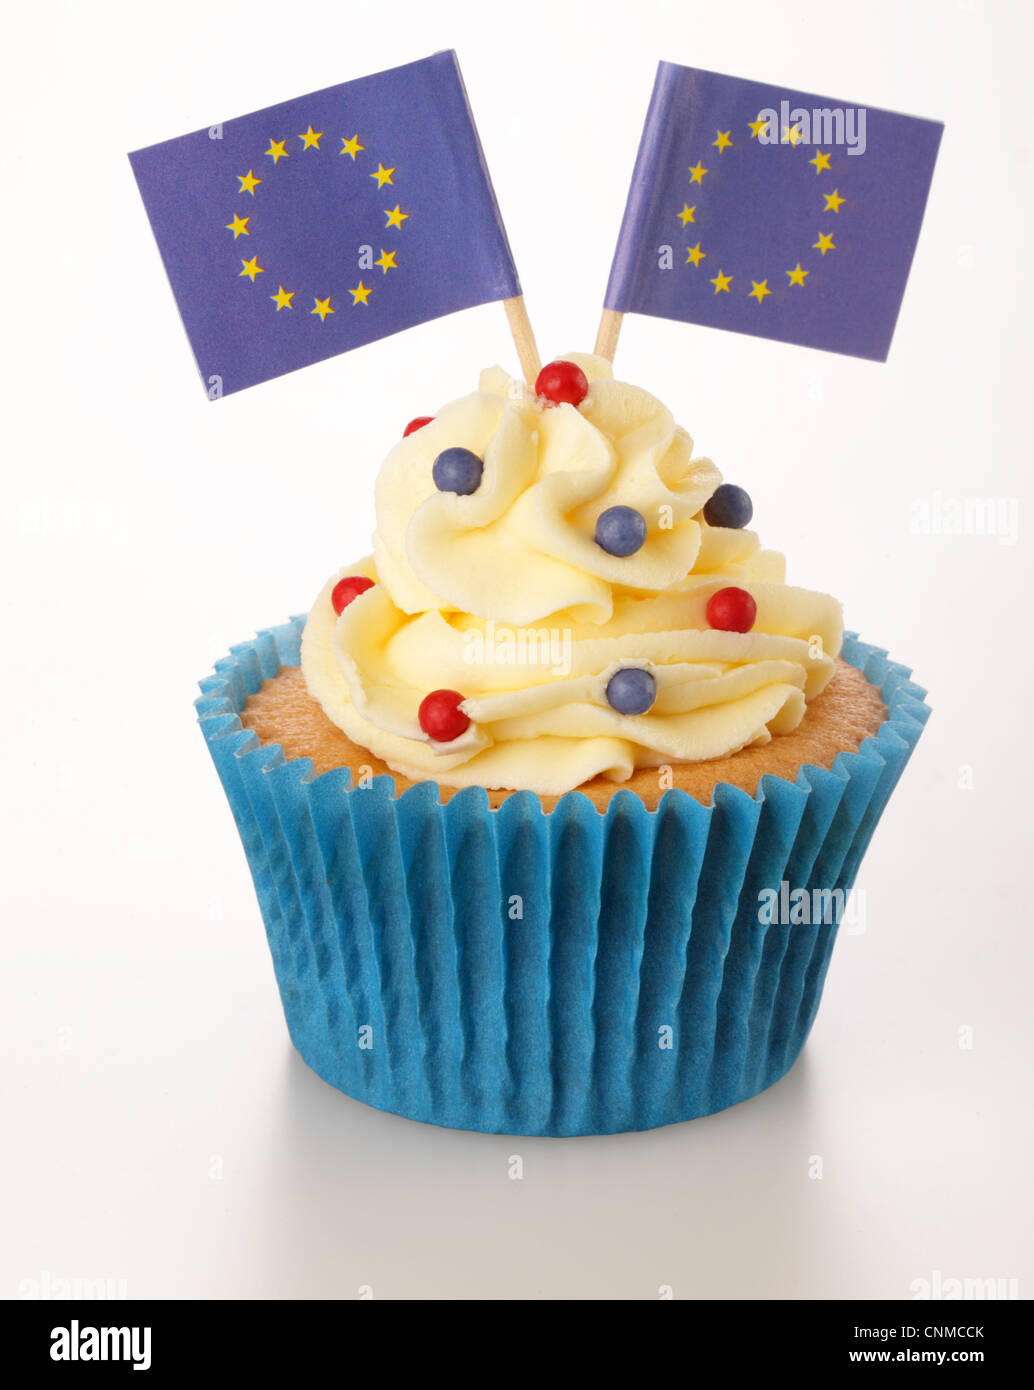 EUROPEAN UNION CUPCAKE - Stock Image